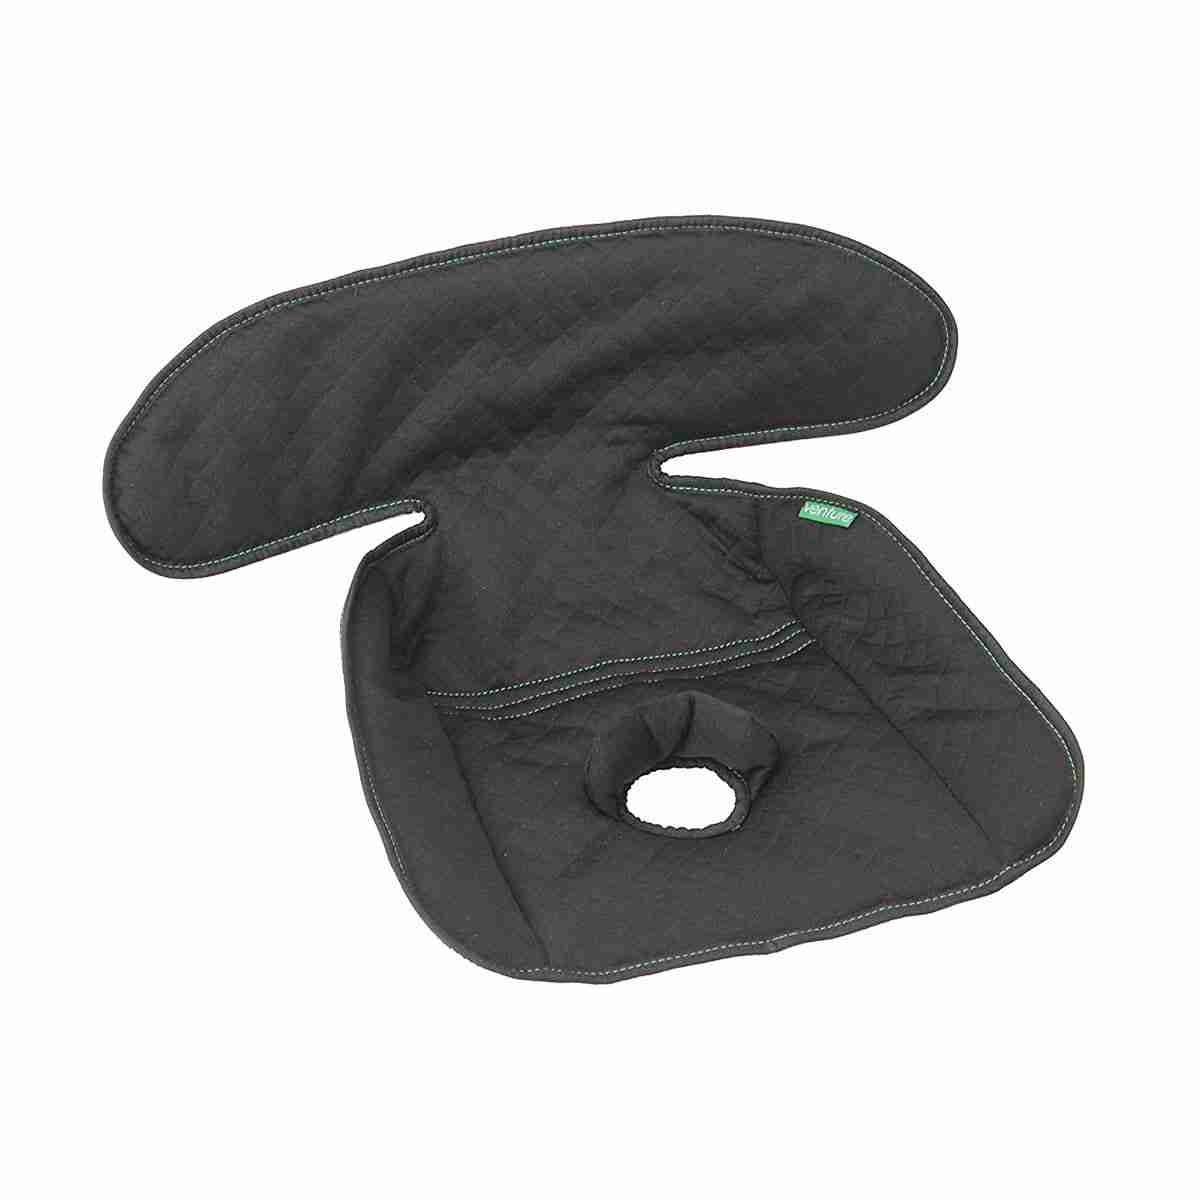 Car seat protector that protects from little accidents or spillages